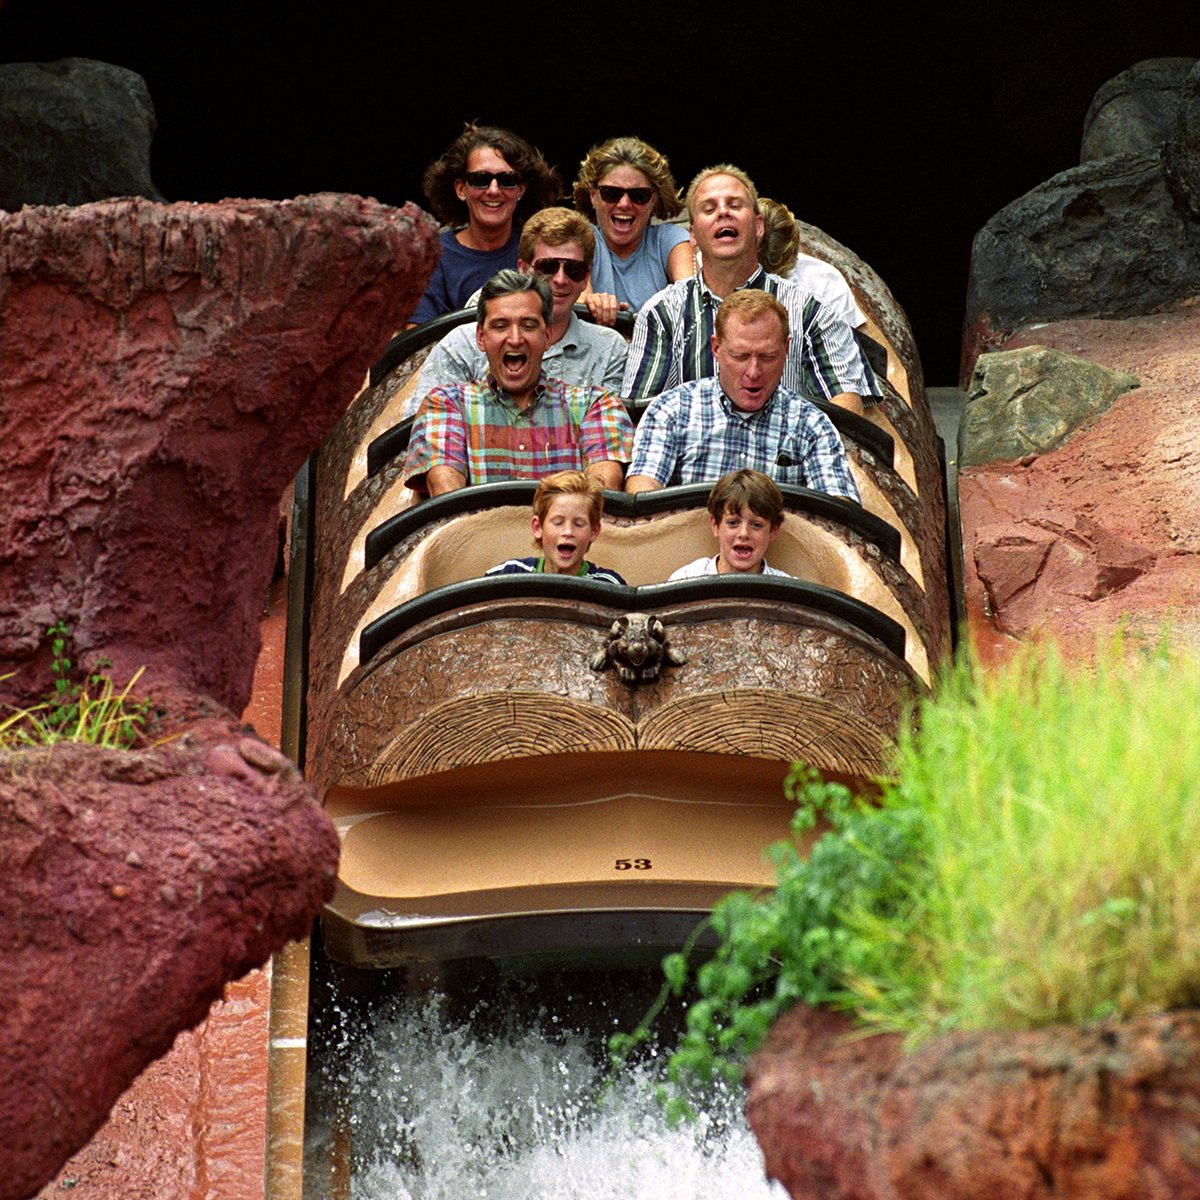 Prince Harry (front left) rides a Log Flume down Splash Mountain at Disney's Magic Kingdom in Florida, USA, leaning forward, hidden (top row right) is his mother the Princess of Wales. (Photo by Martin Keene - PA Images/PA Images via Getty Images)